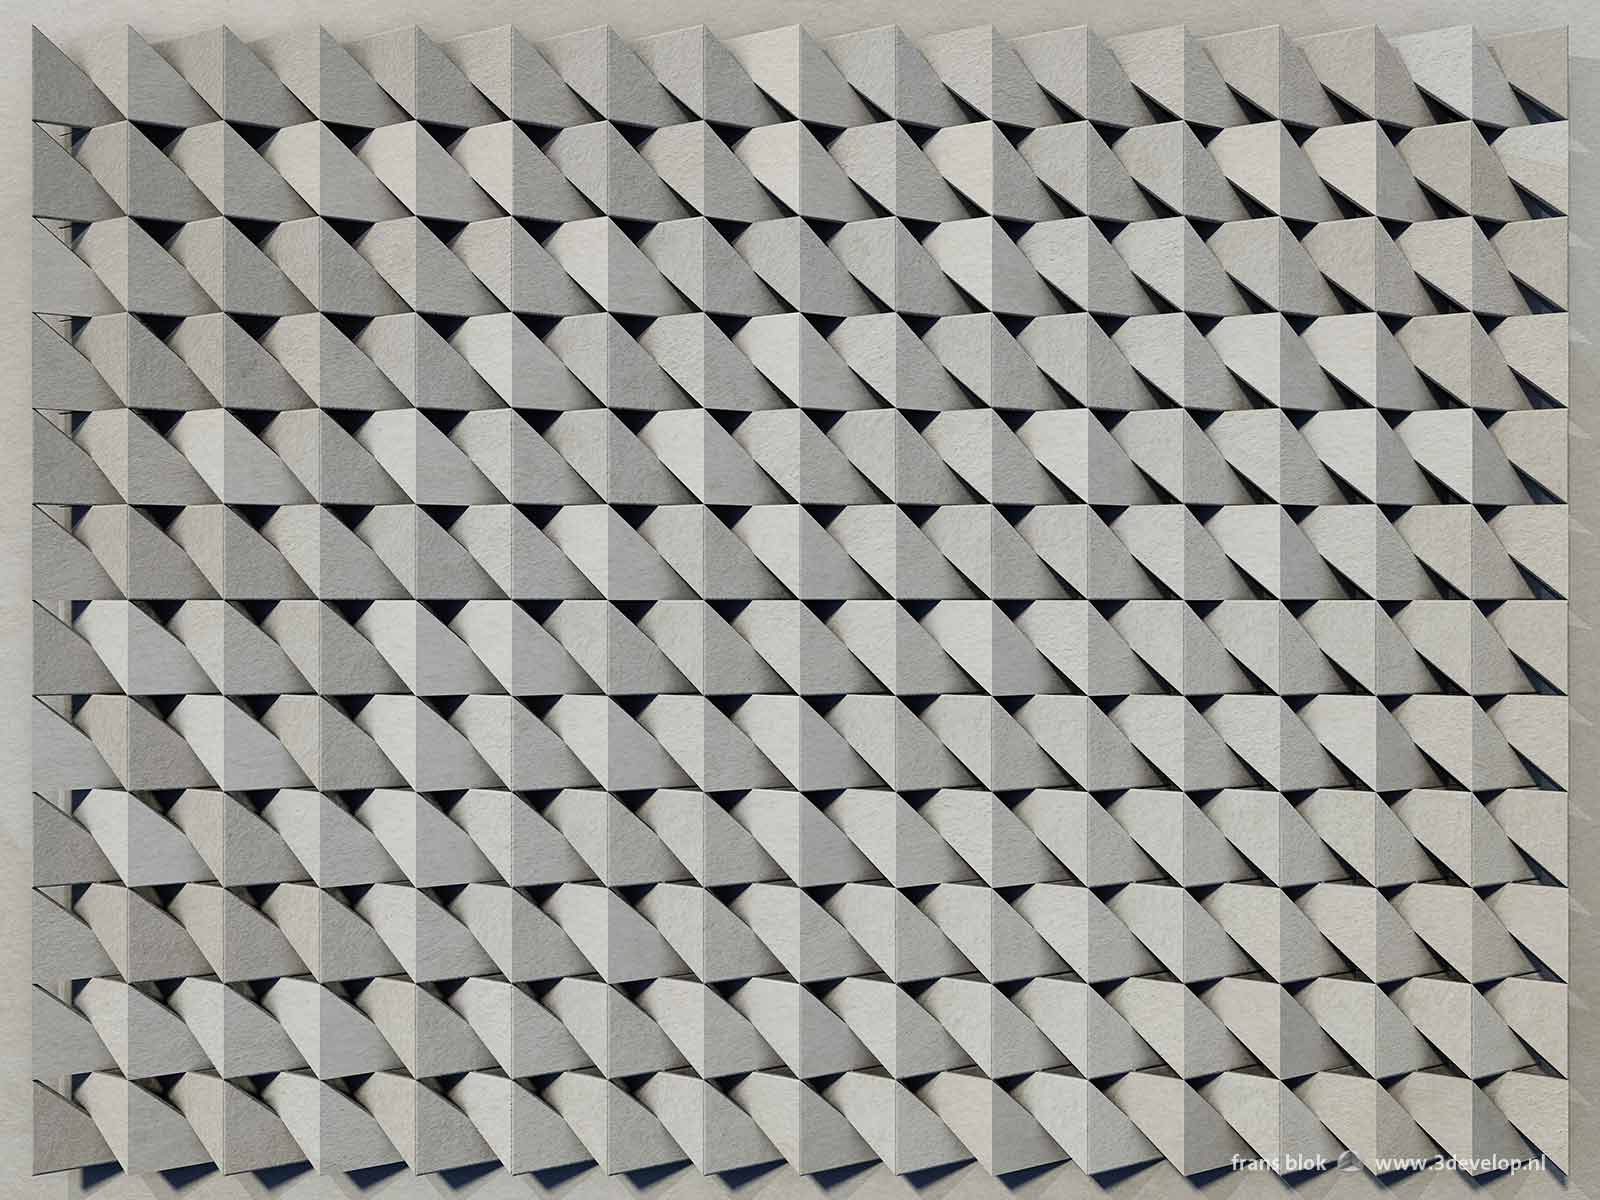 A virtual relief, creating the illusion of depth on a flat surface,, made by repetition of a simple shape, done in grey cardboard.